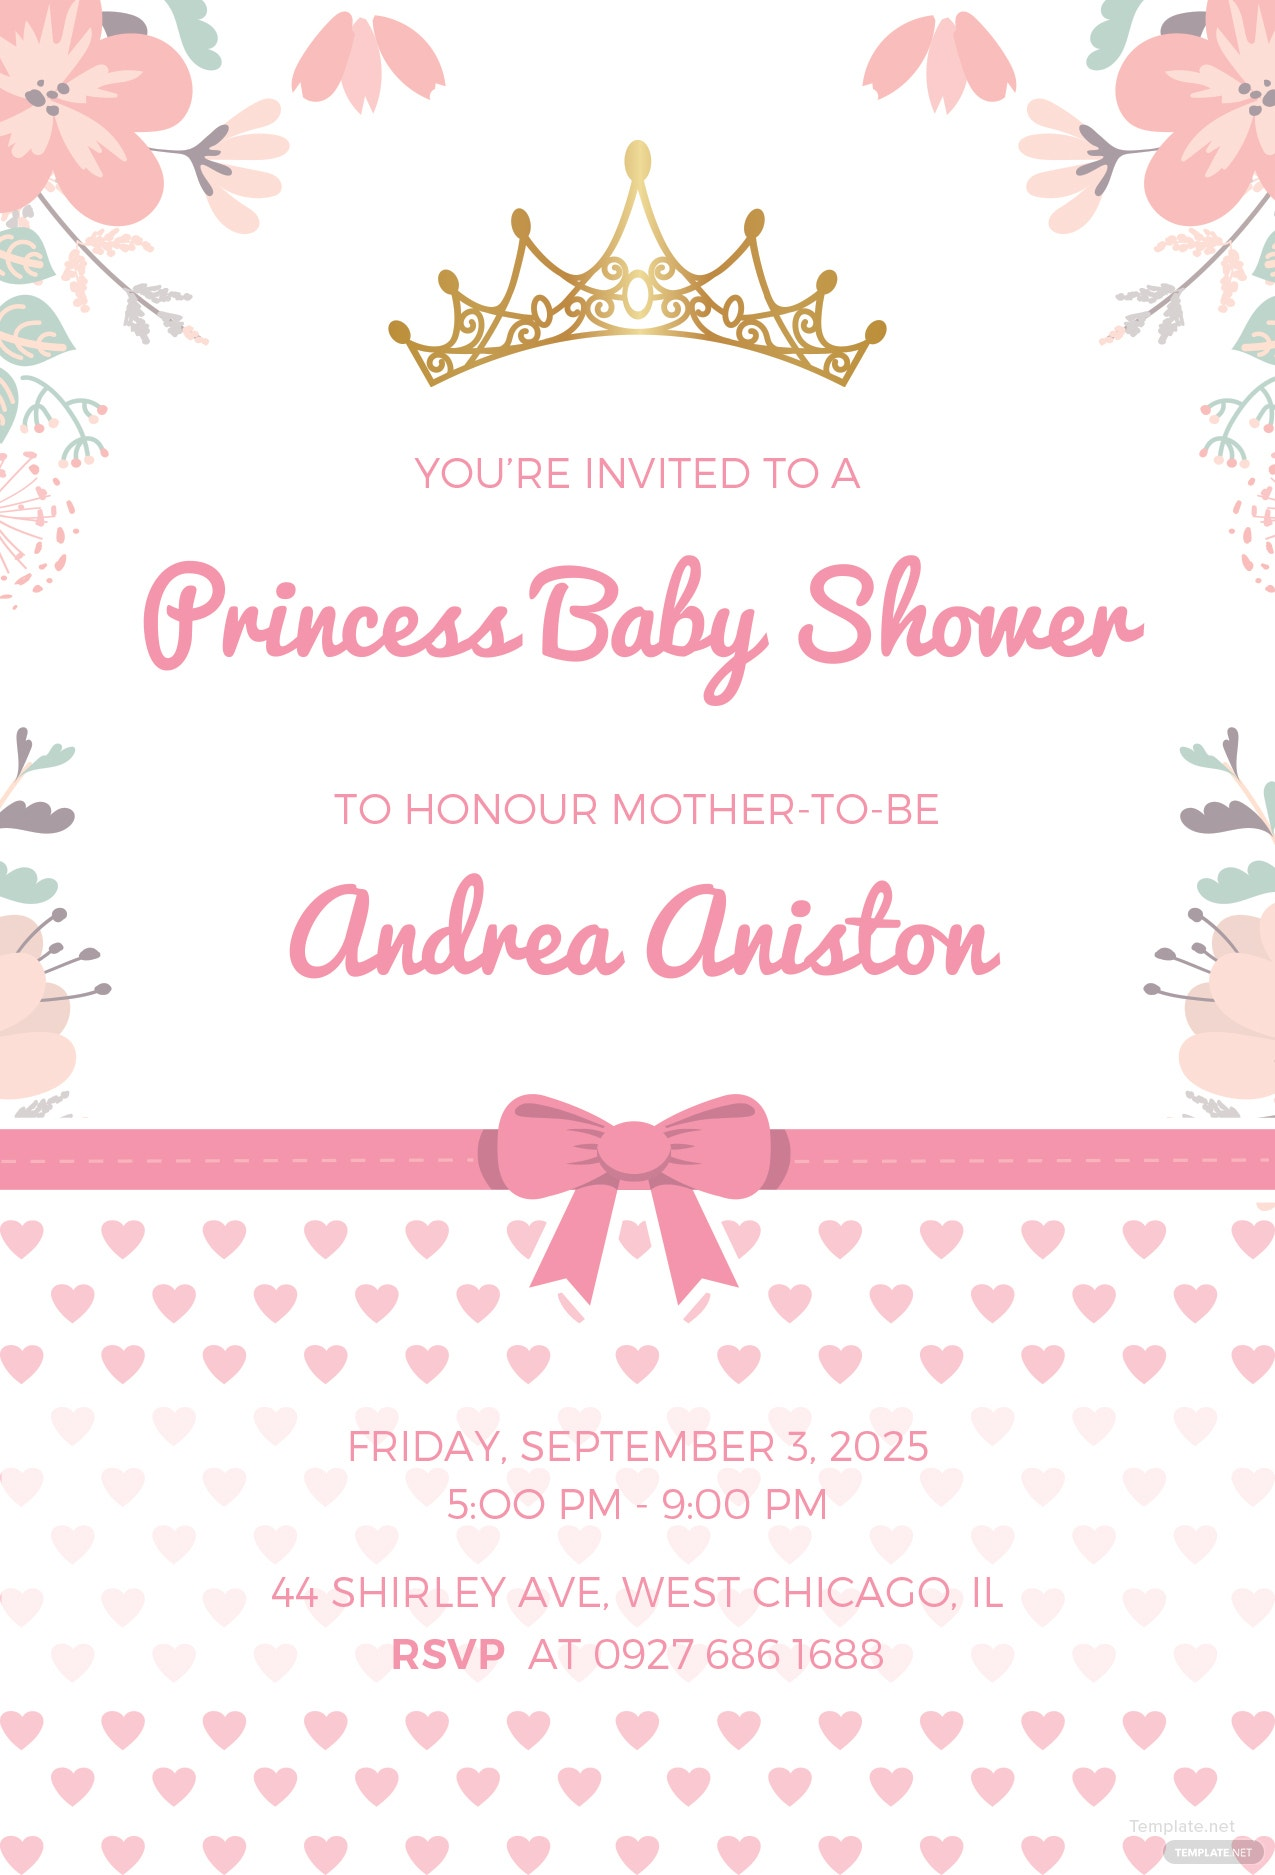 Free Princess Baby Shower Invitation Template In Microsoft Word - Baby shower invite template